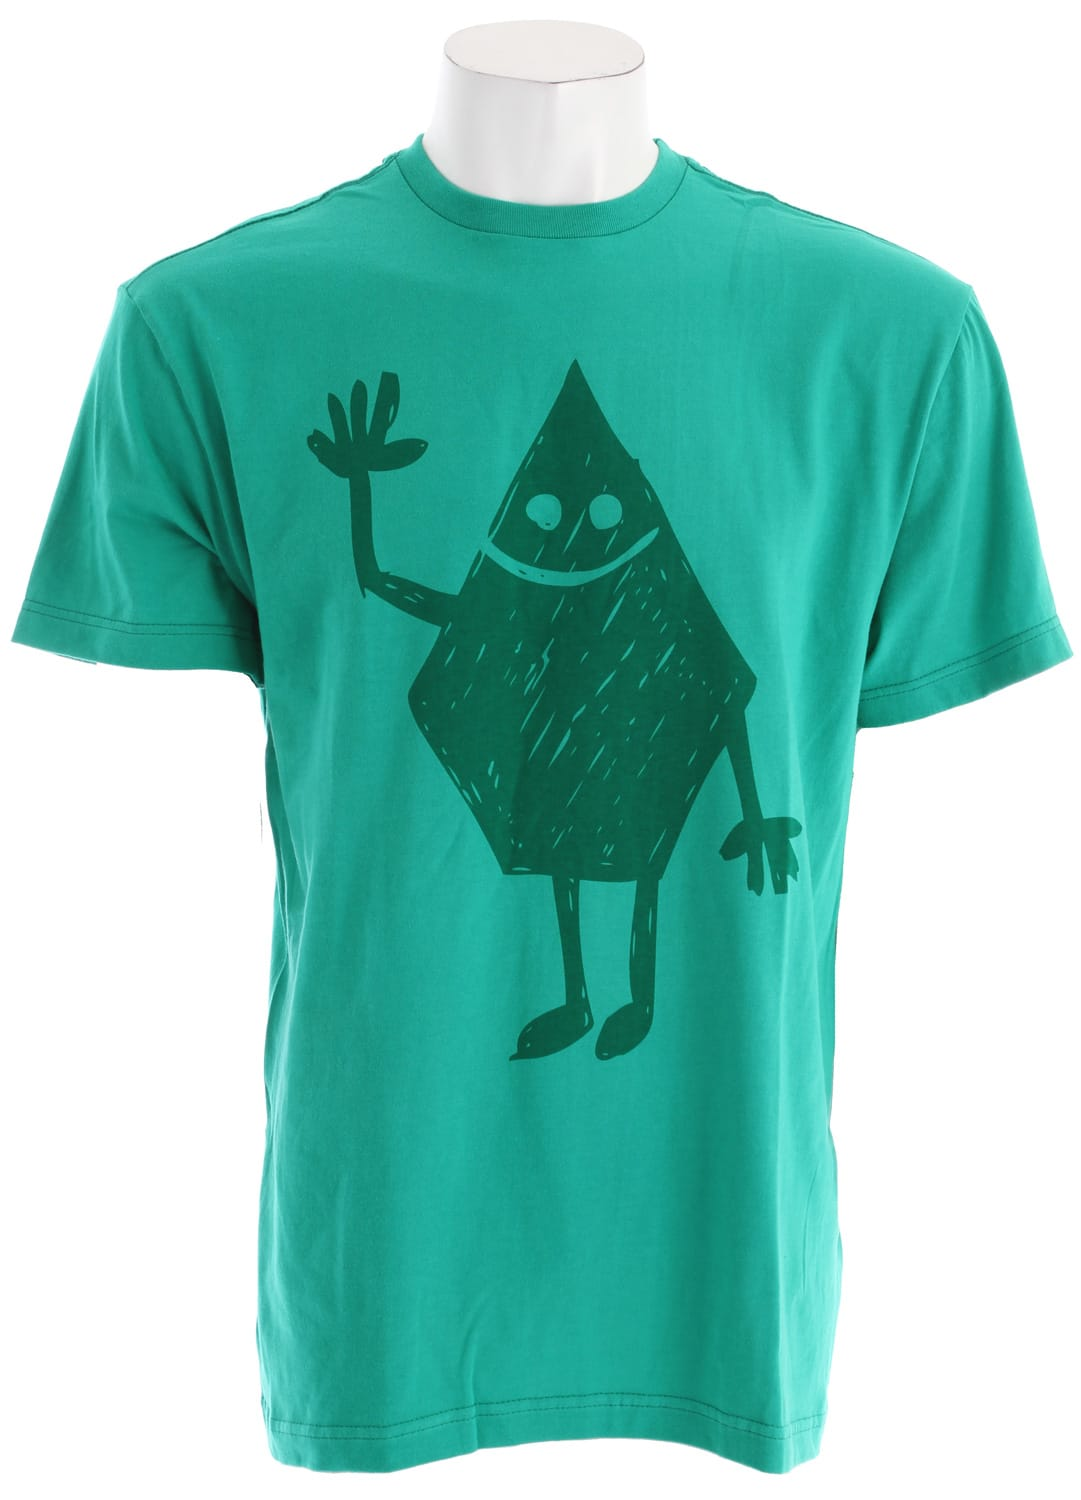 Shop for Volcom Hey Stone T-Shirt Emerald Green - Men's